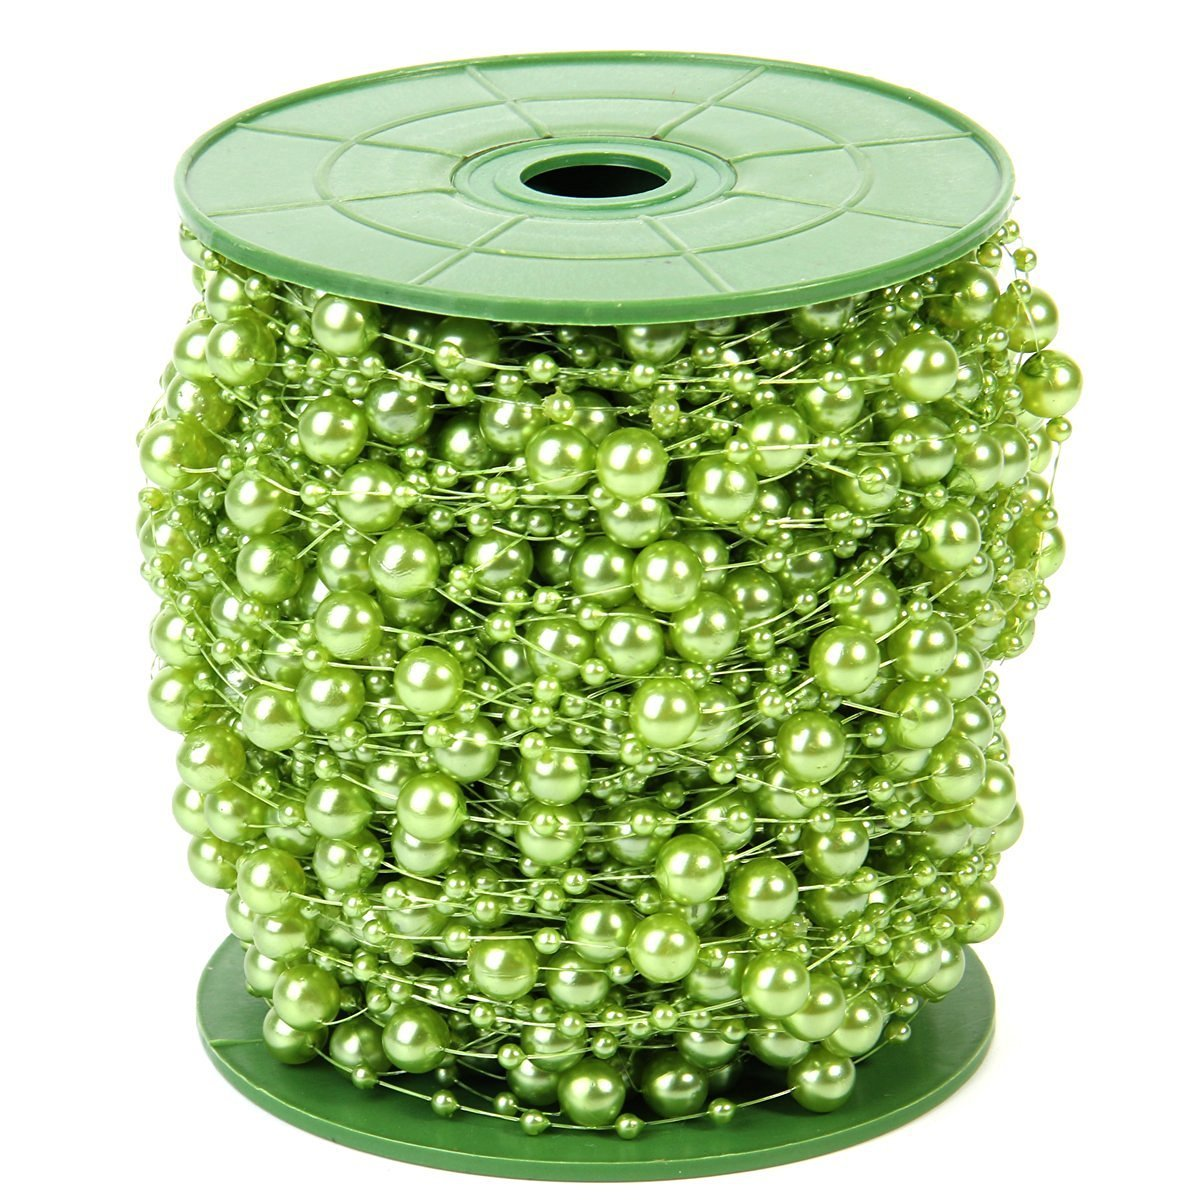 Cheap wedding centerpieces find wedding centerpieces deals on line get quotations krismile200 feet roll green pearl string party garland wedding centerpieces bridal bouquet decoration pearl string bead junglespirit Choice Image